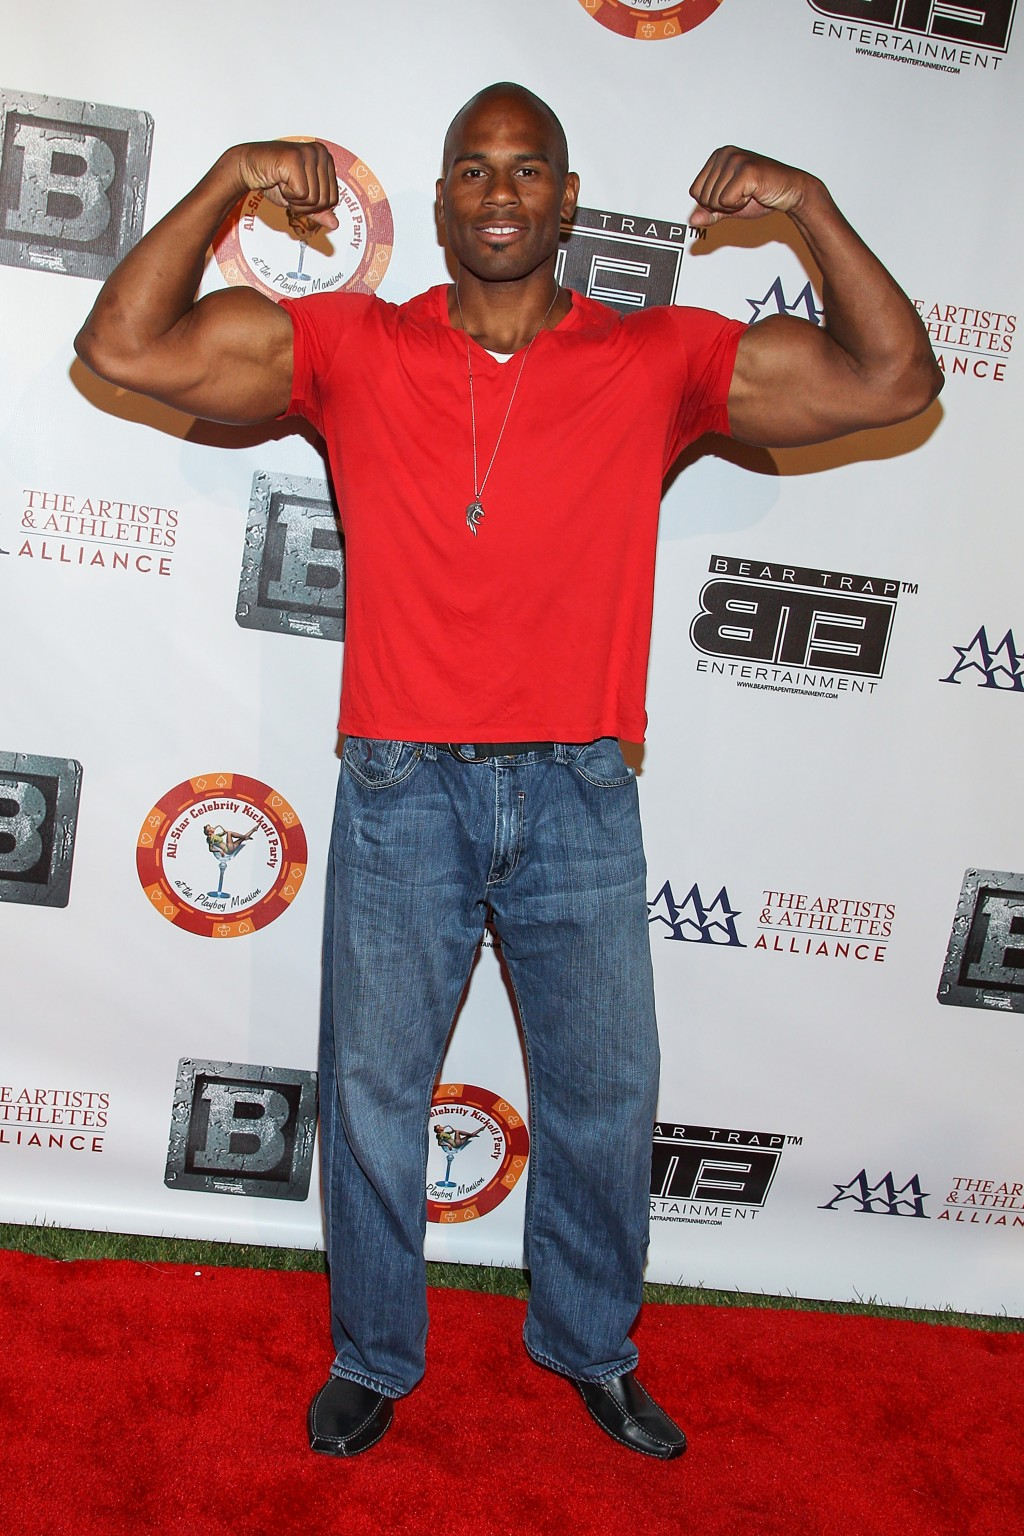 FILE - In this July 15, 2013 file photo, professional wrestler Shad Gaspard attends the 8th Annual BTE All-Star Celebrity Kickoff Party at the Playboy...